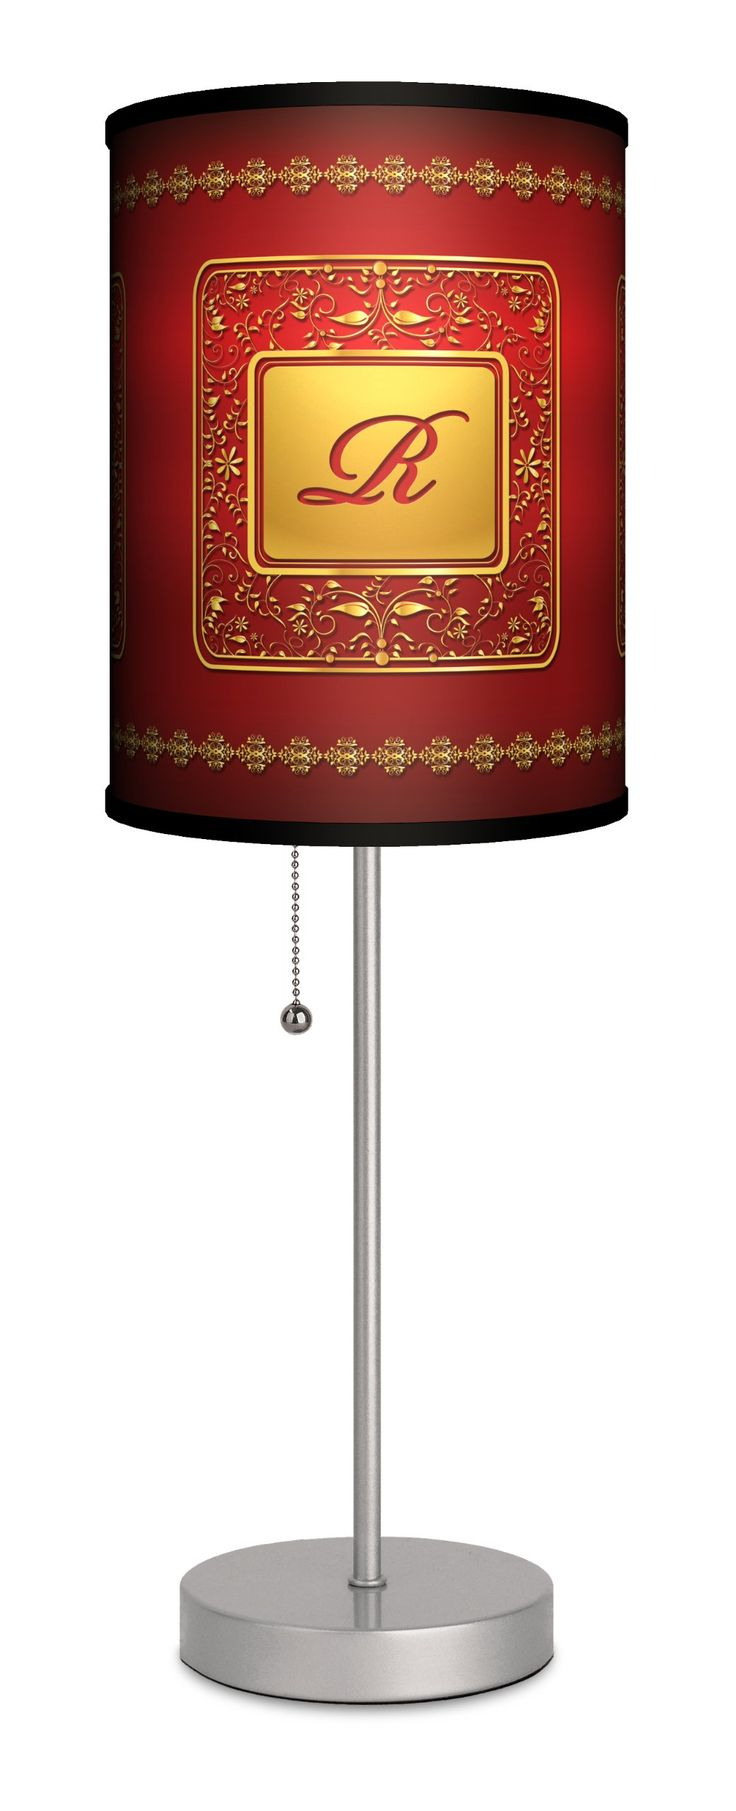 Monograms - Golden with Red Letter R Sport Silver Lamp. All shades printed and made in USA. State of the art translucent shade material with non-fade inks. Ultra-durable, powder-coated silver finish base with pull-chain. Stylish gift box with carrying handle. Suggested 13-watt CFL bulb.